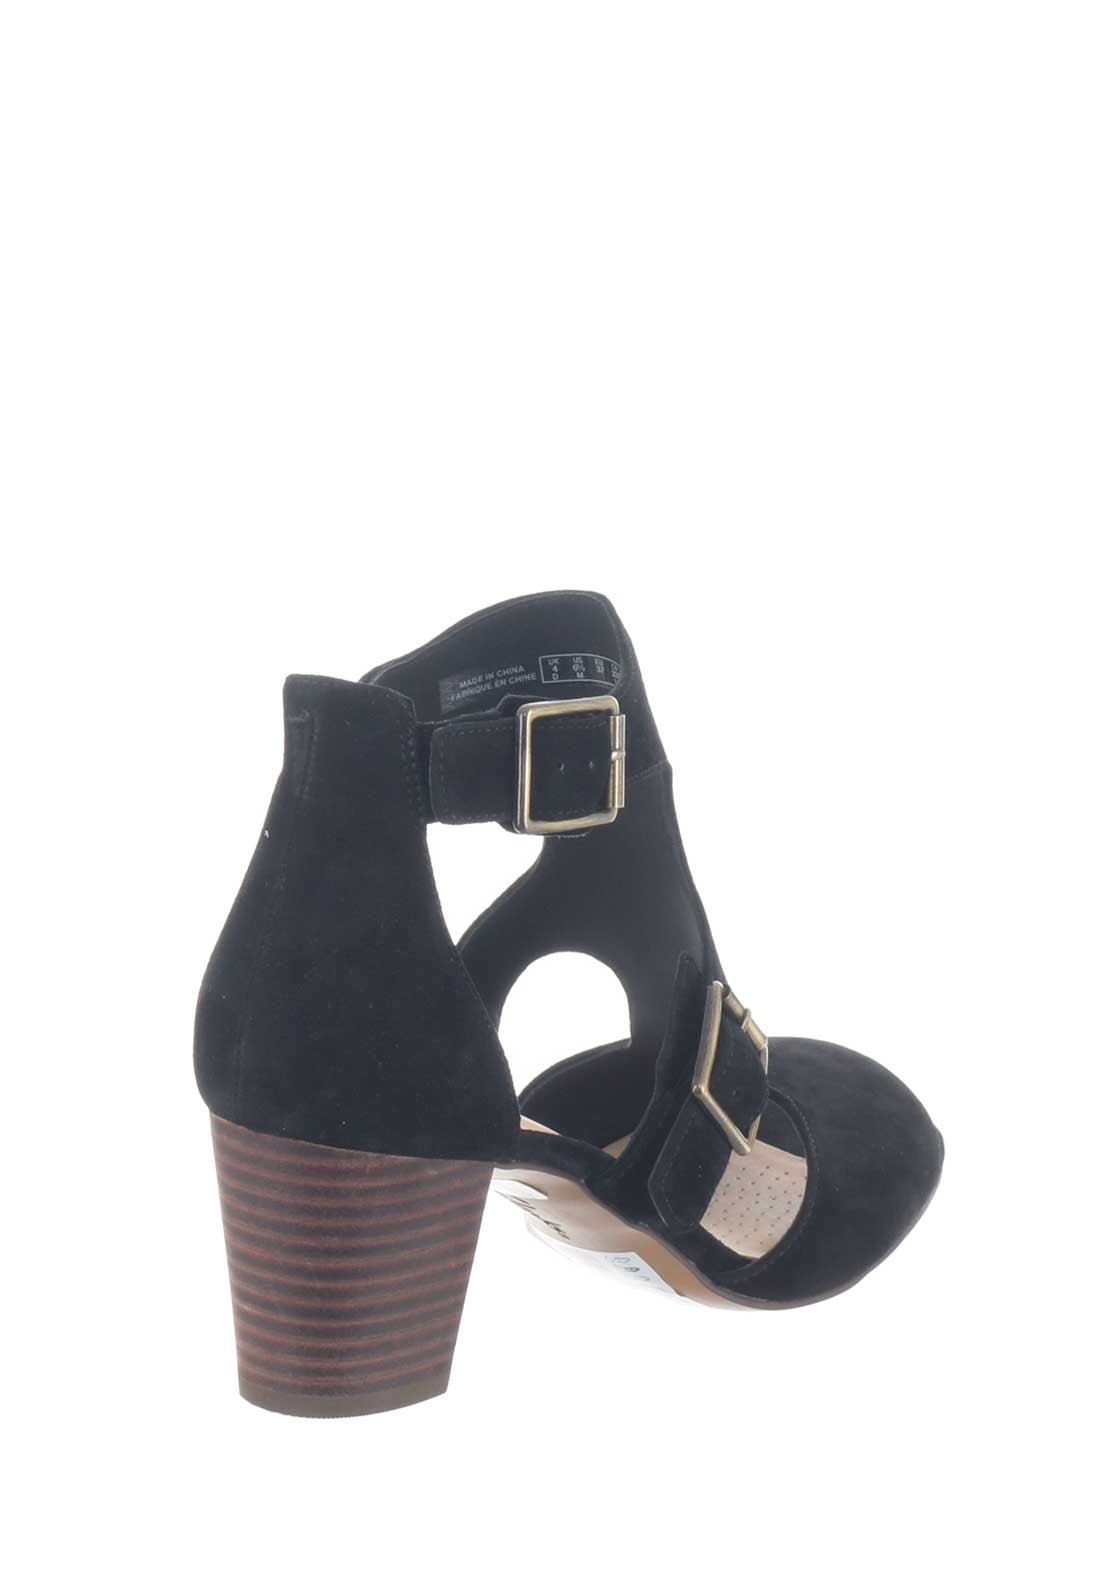 5ca946619393 Clarks Womens Deloria Kay Suede Heeled Sandals